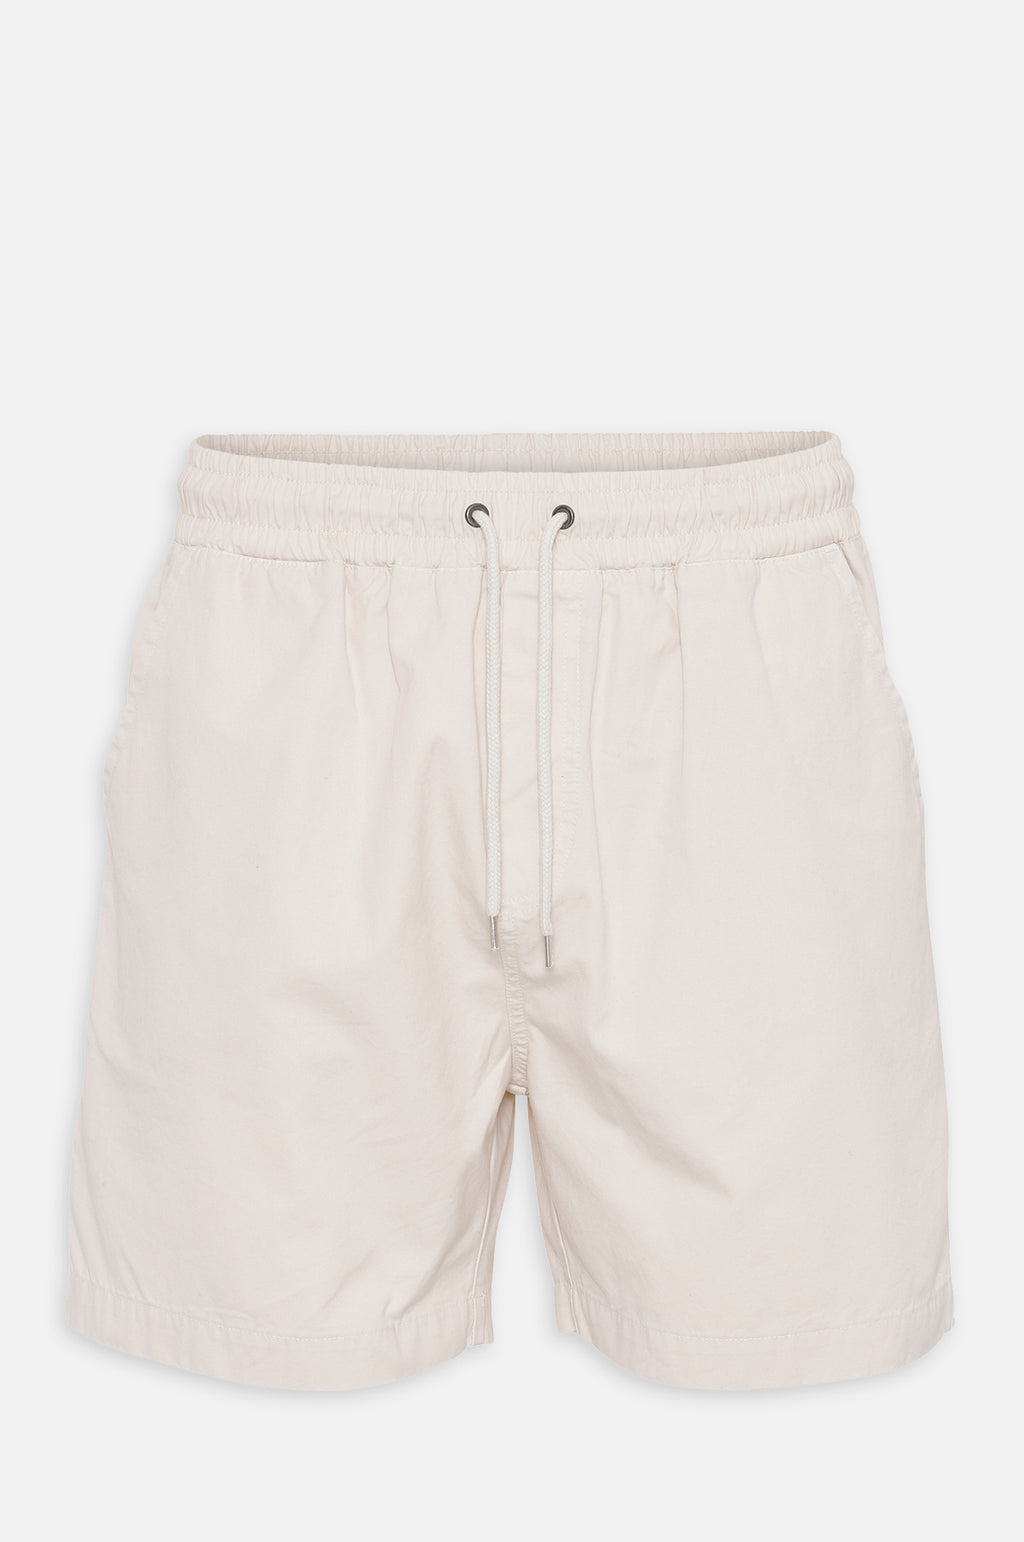 Organic Twill Shorts in Ivory White